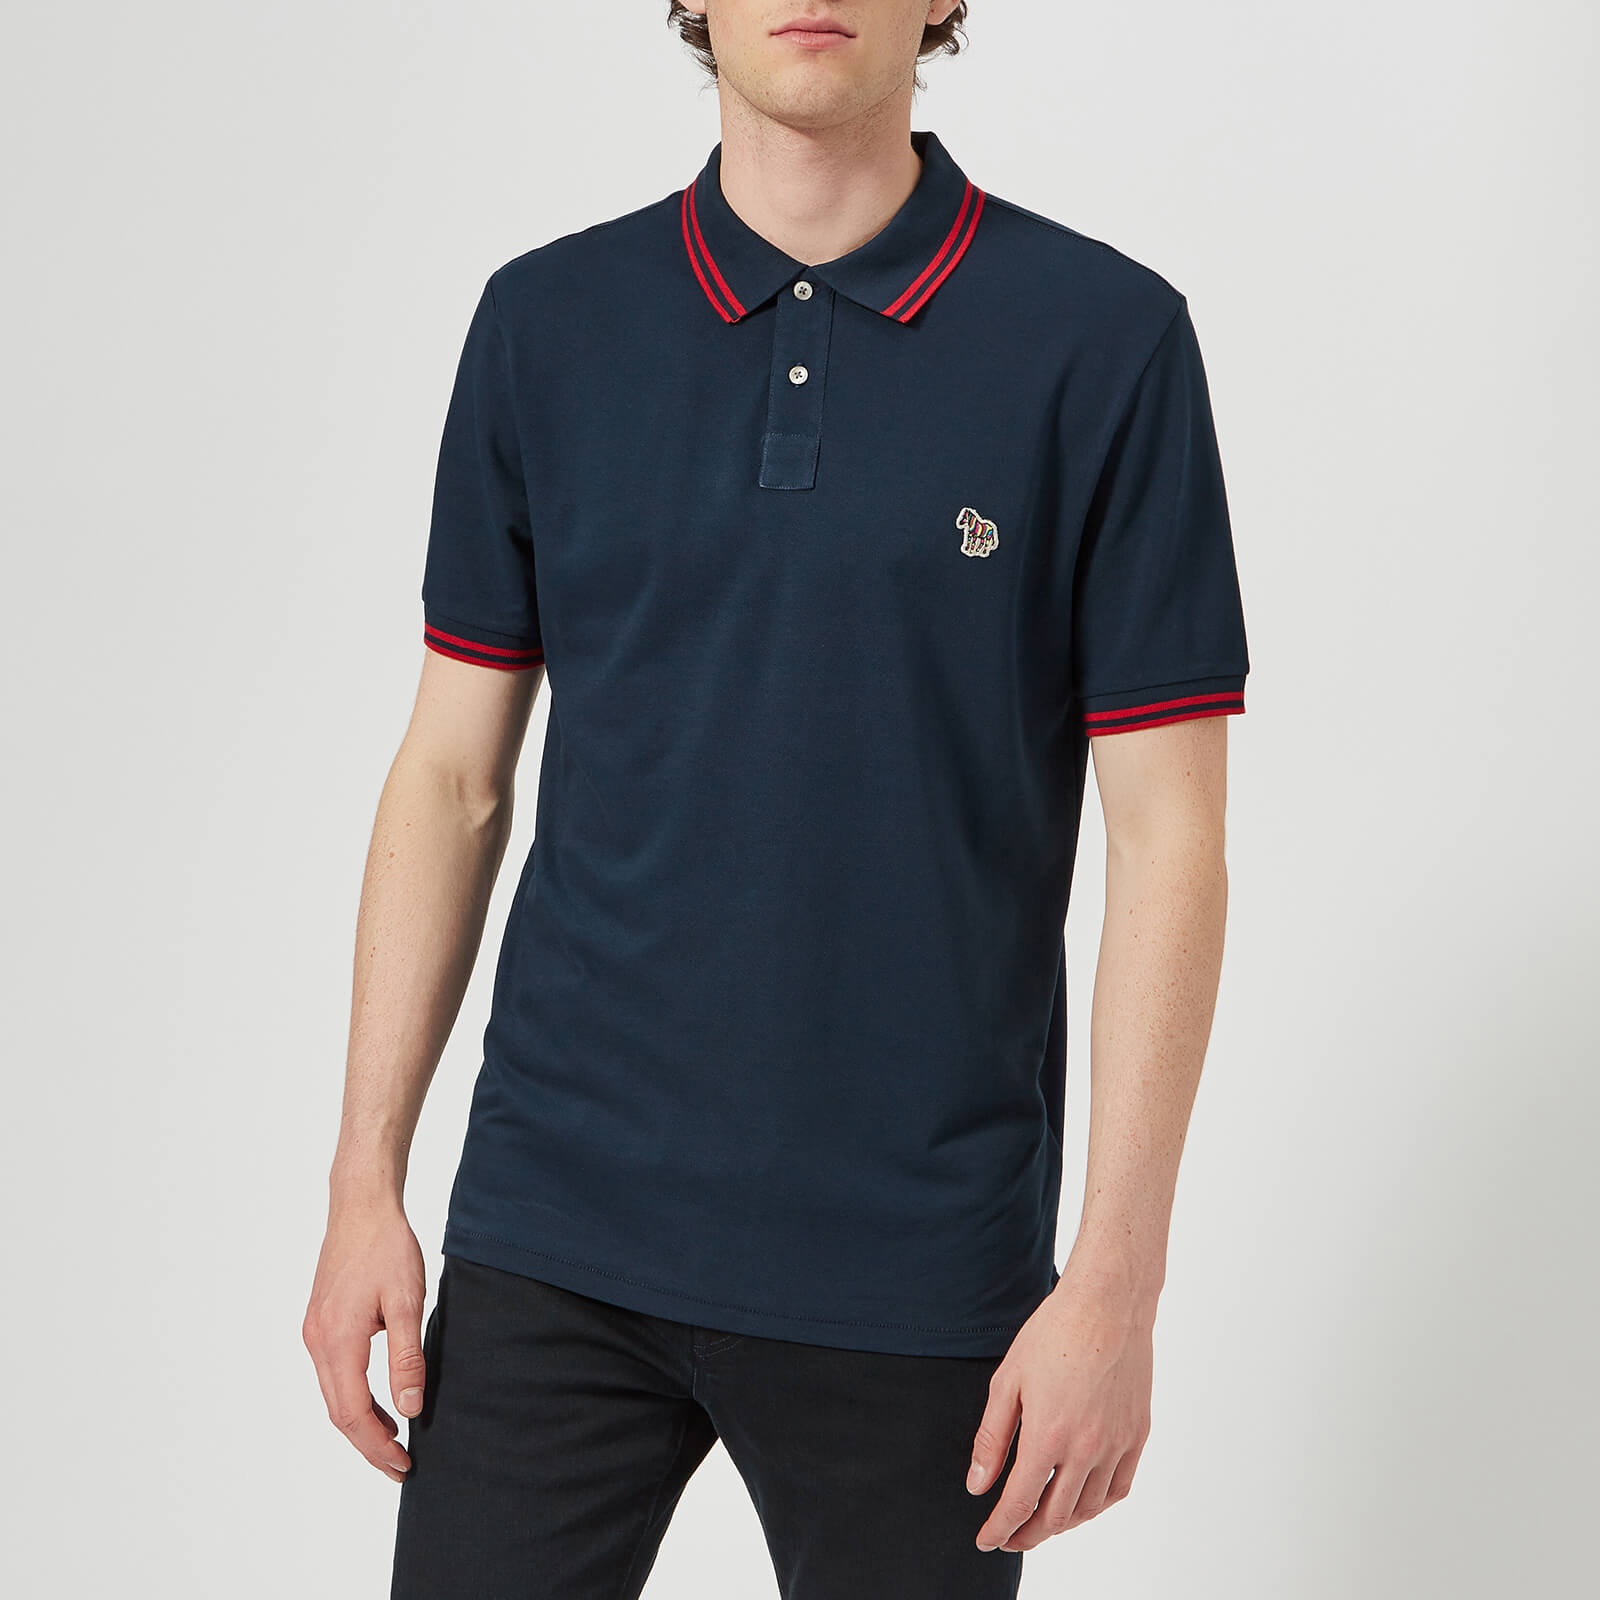 1461f7061 PS Paul Smith Men's Regular Fit Short Sleeve Tipped Polo Shirt - Navy